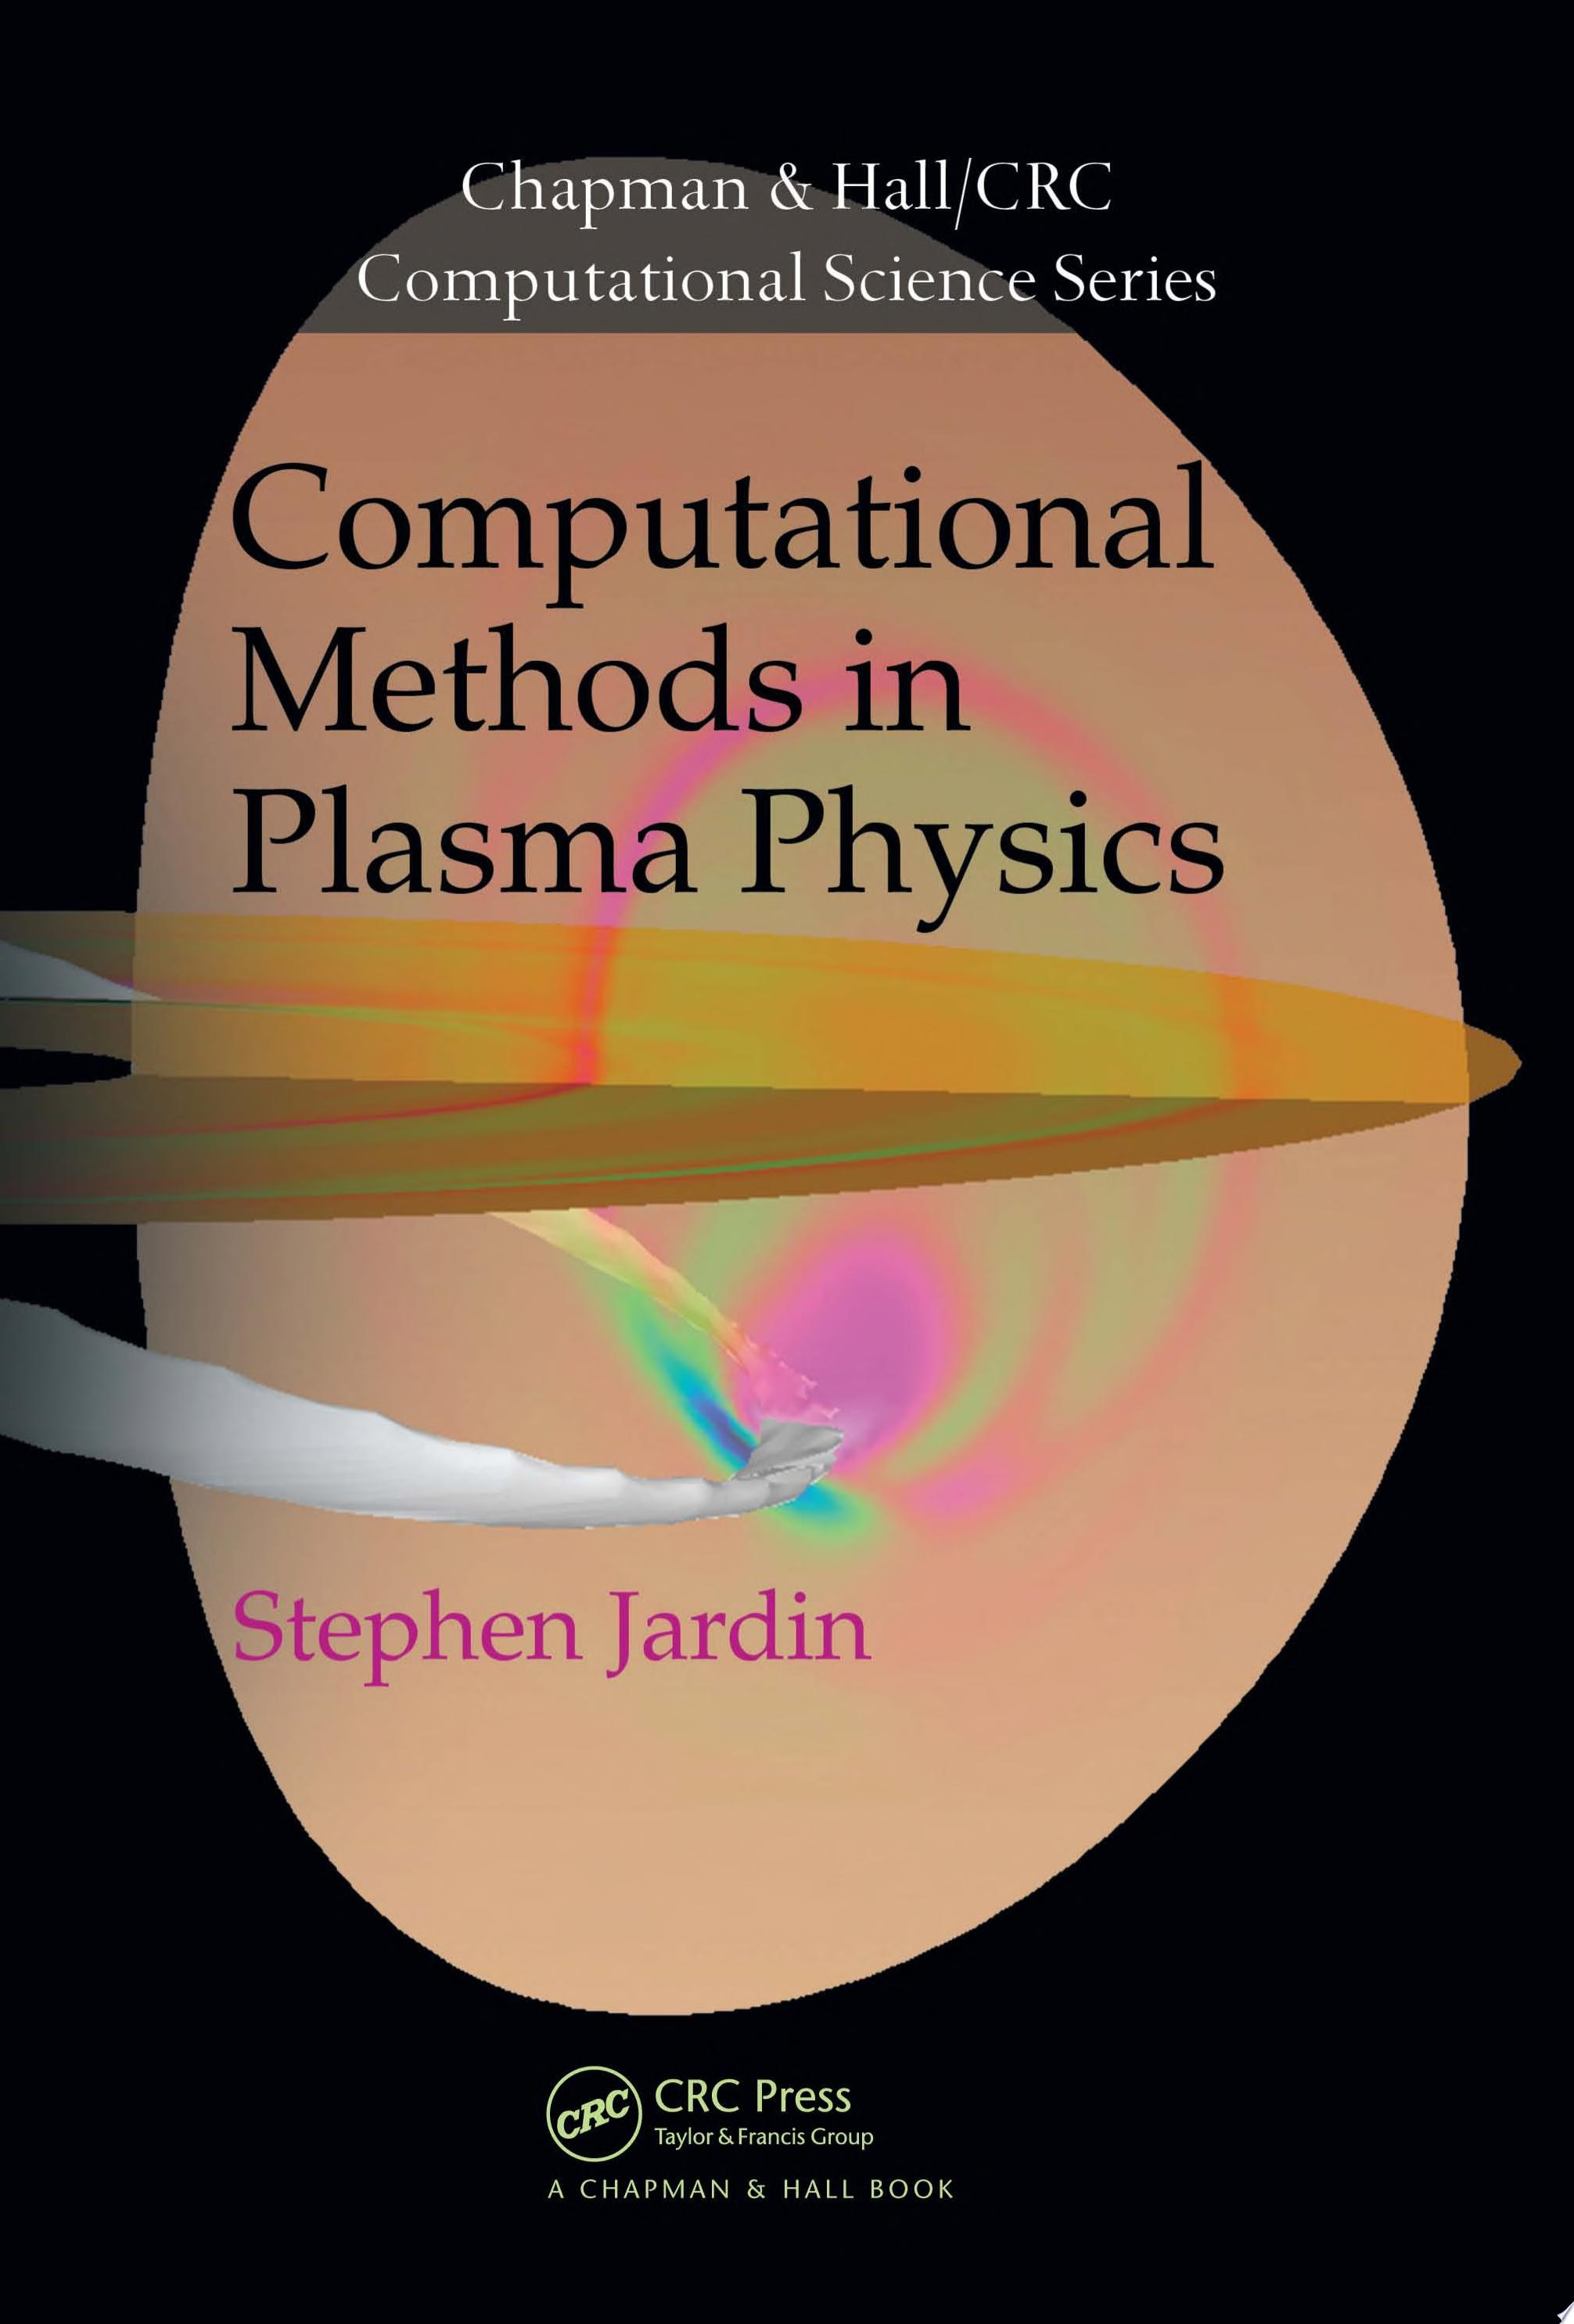 Computational Methods in Plasma Physics